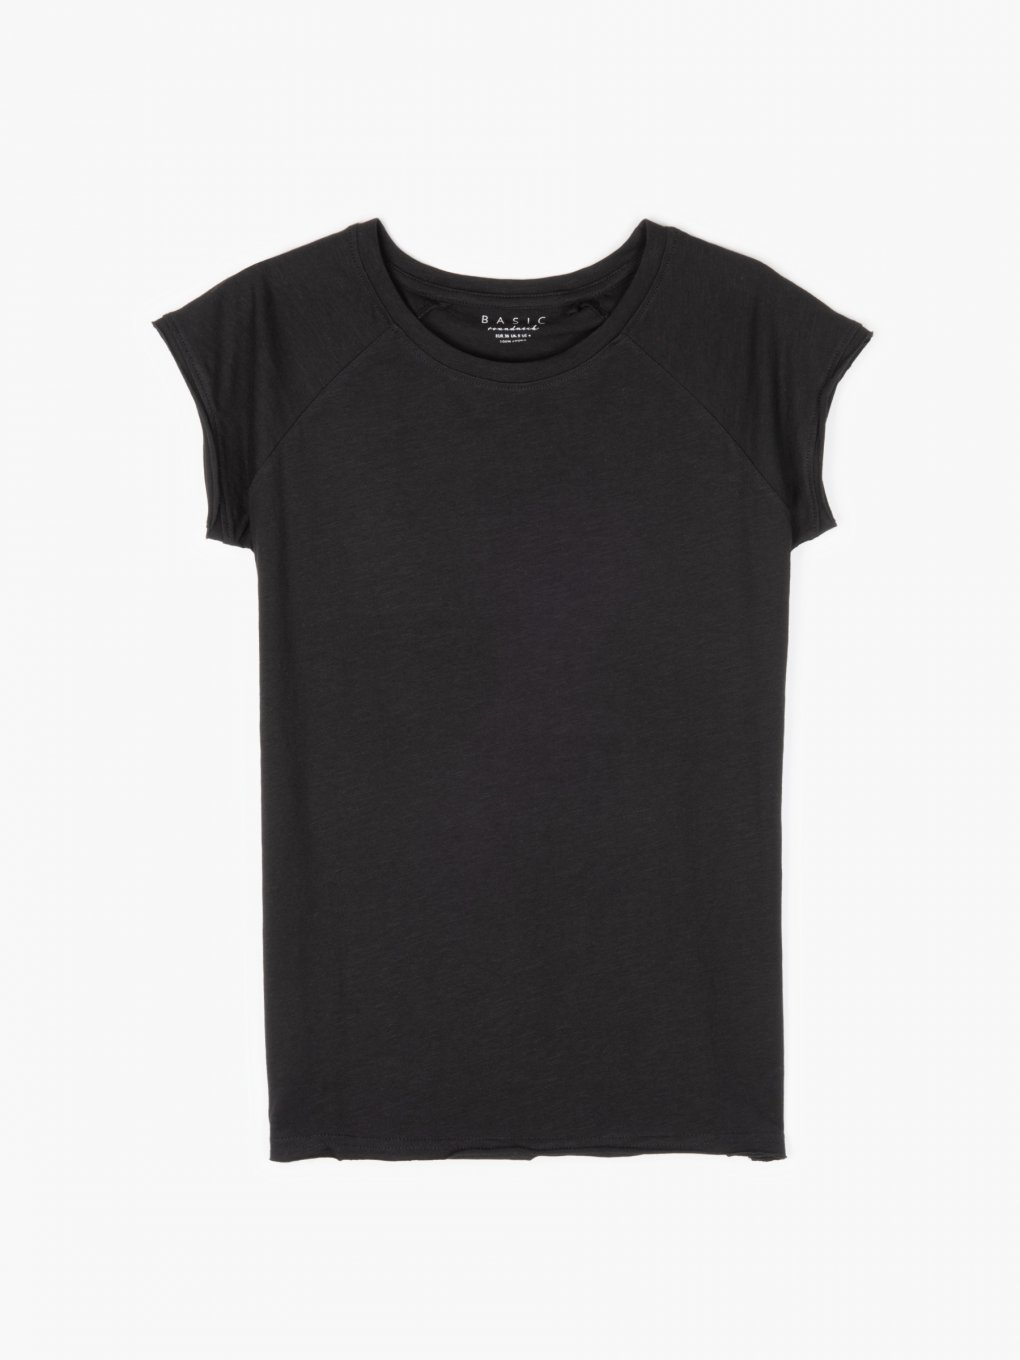 Basic raglan sleeve t-shirt